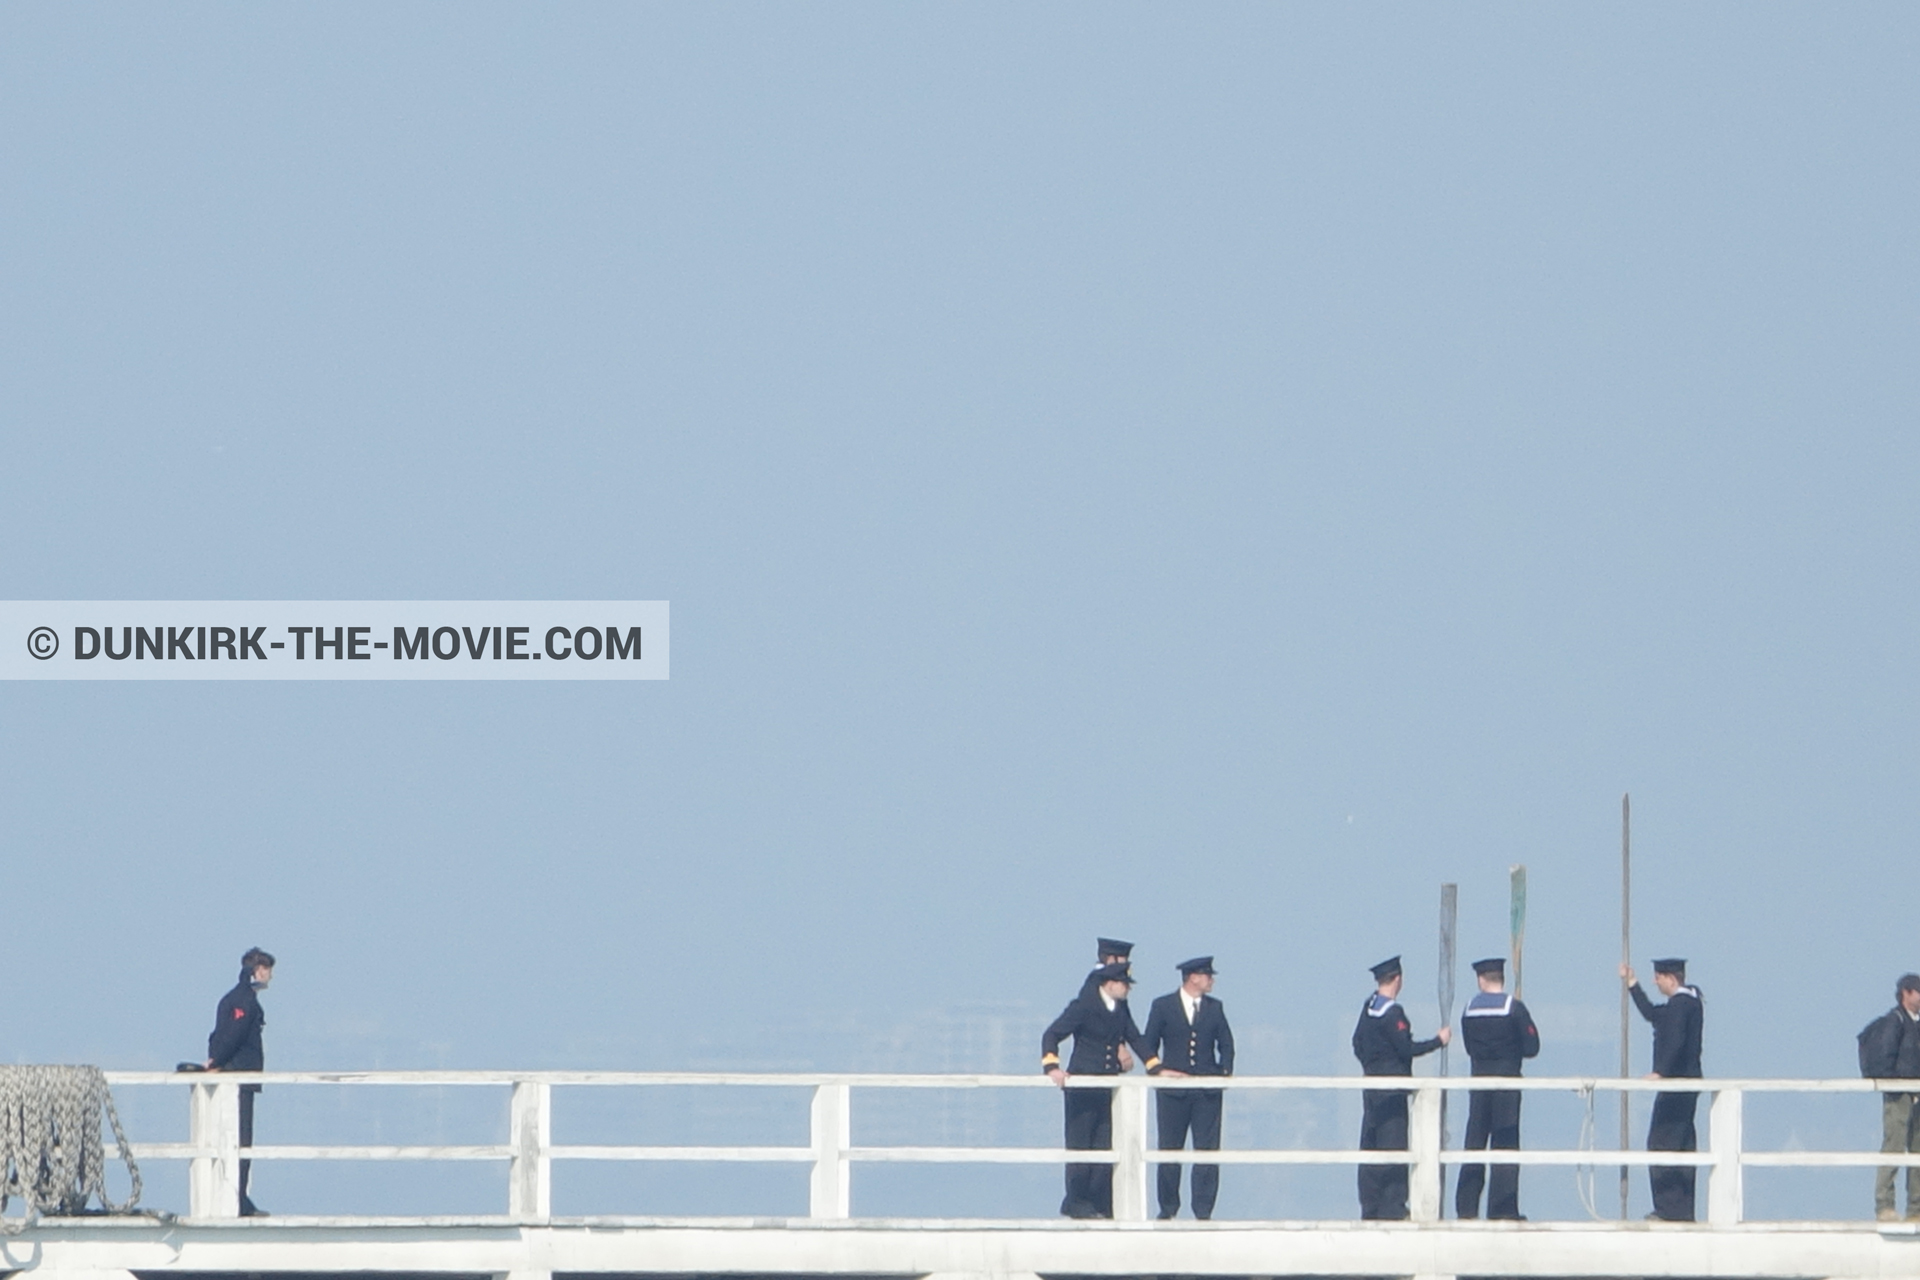 Picture with blue sky, supernumeraries, EST pier, technical team,  from behind the scene of the Dunkirk movie by Nolan